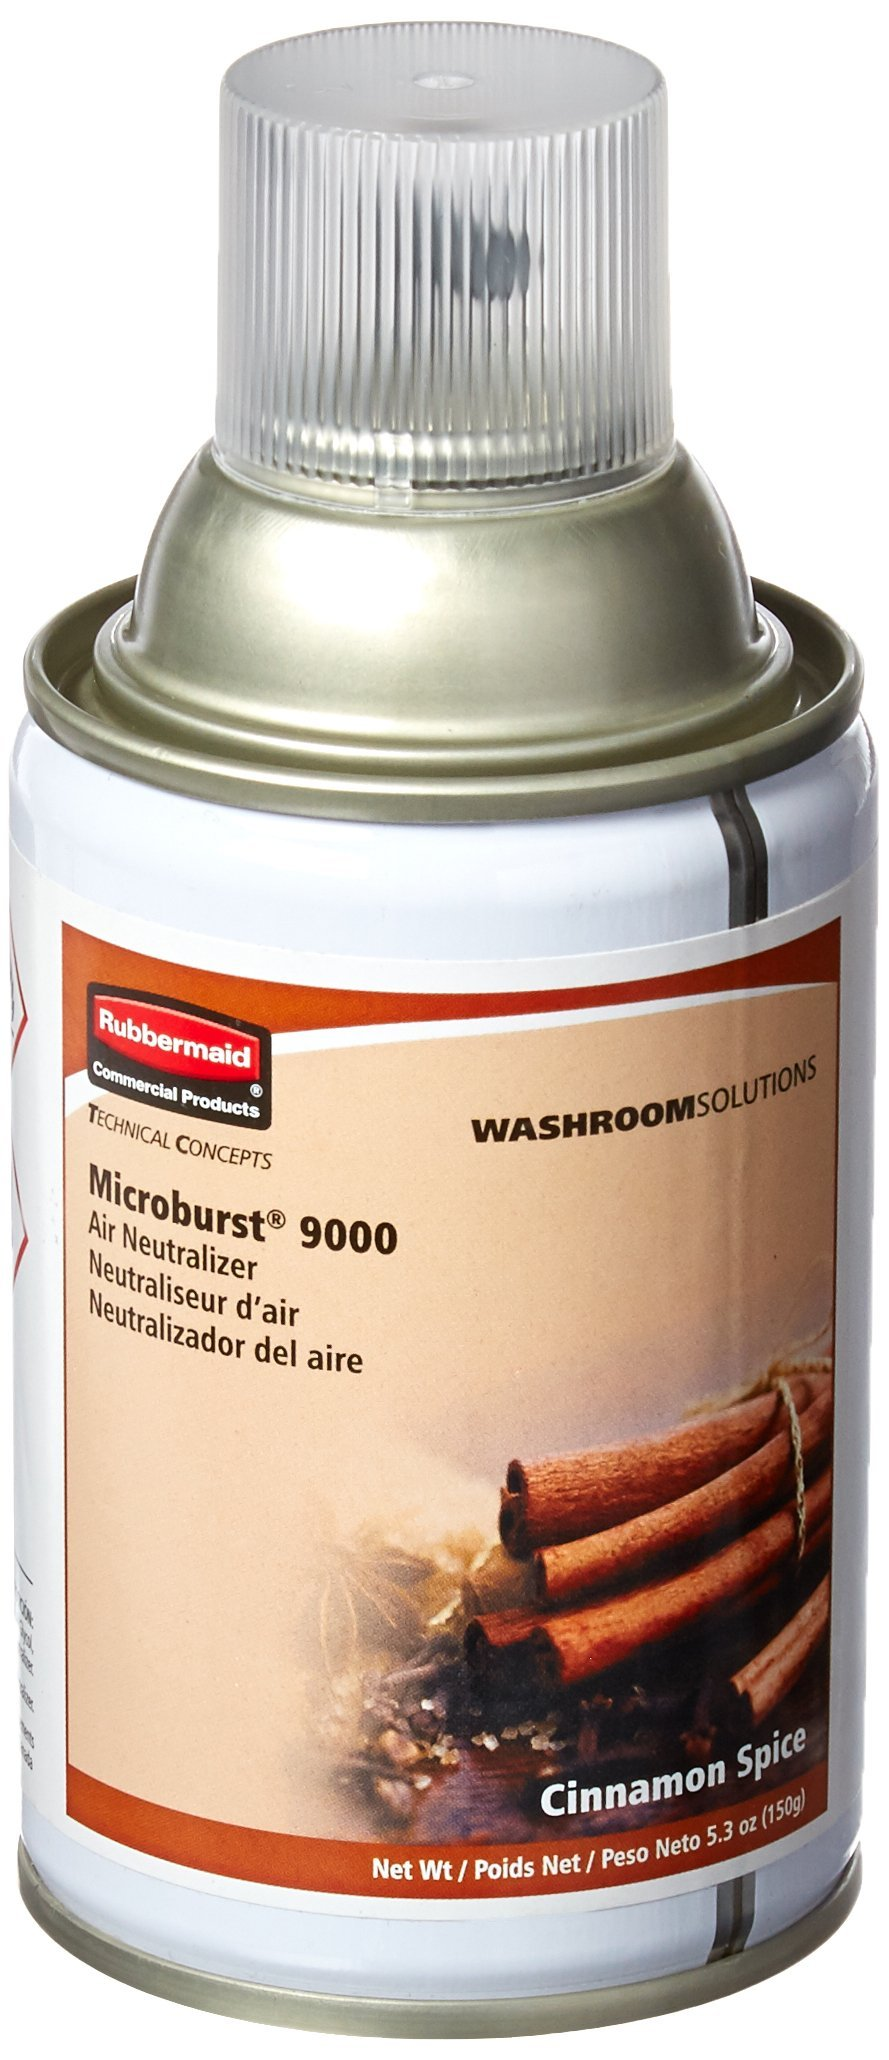 Rubbermaid Commercial FG401692 Refill for Microburst 9000 Automatic Odor Control System, Cinnamon Spice